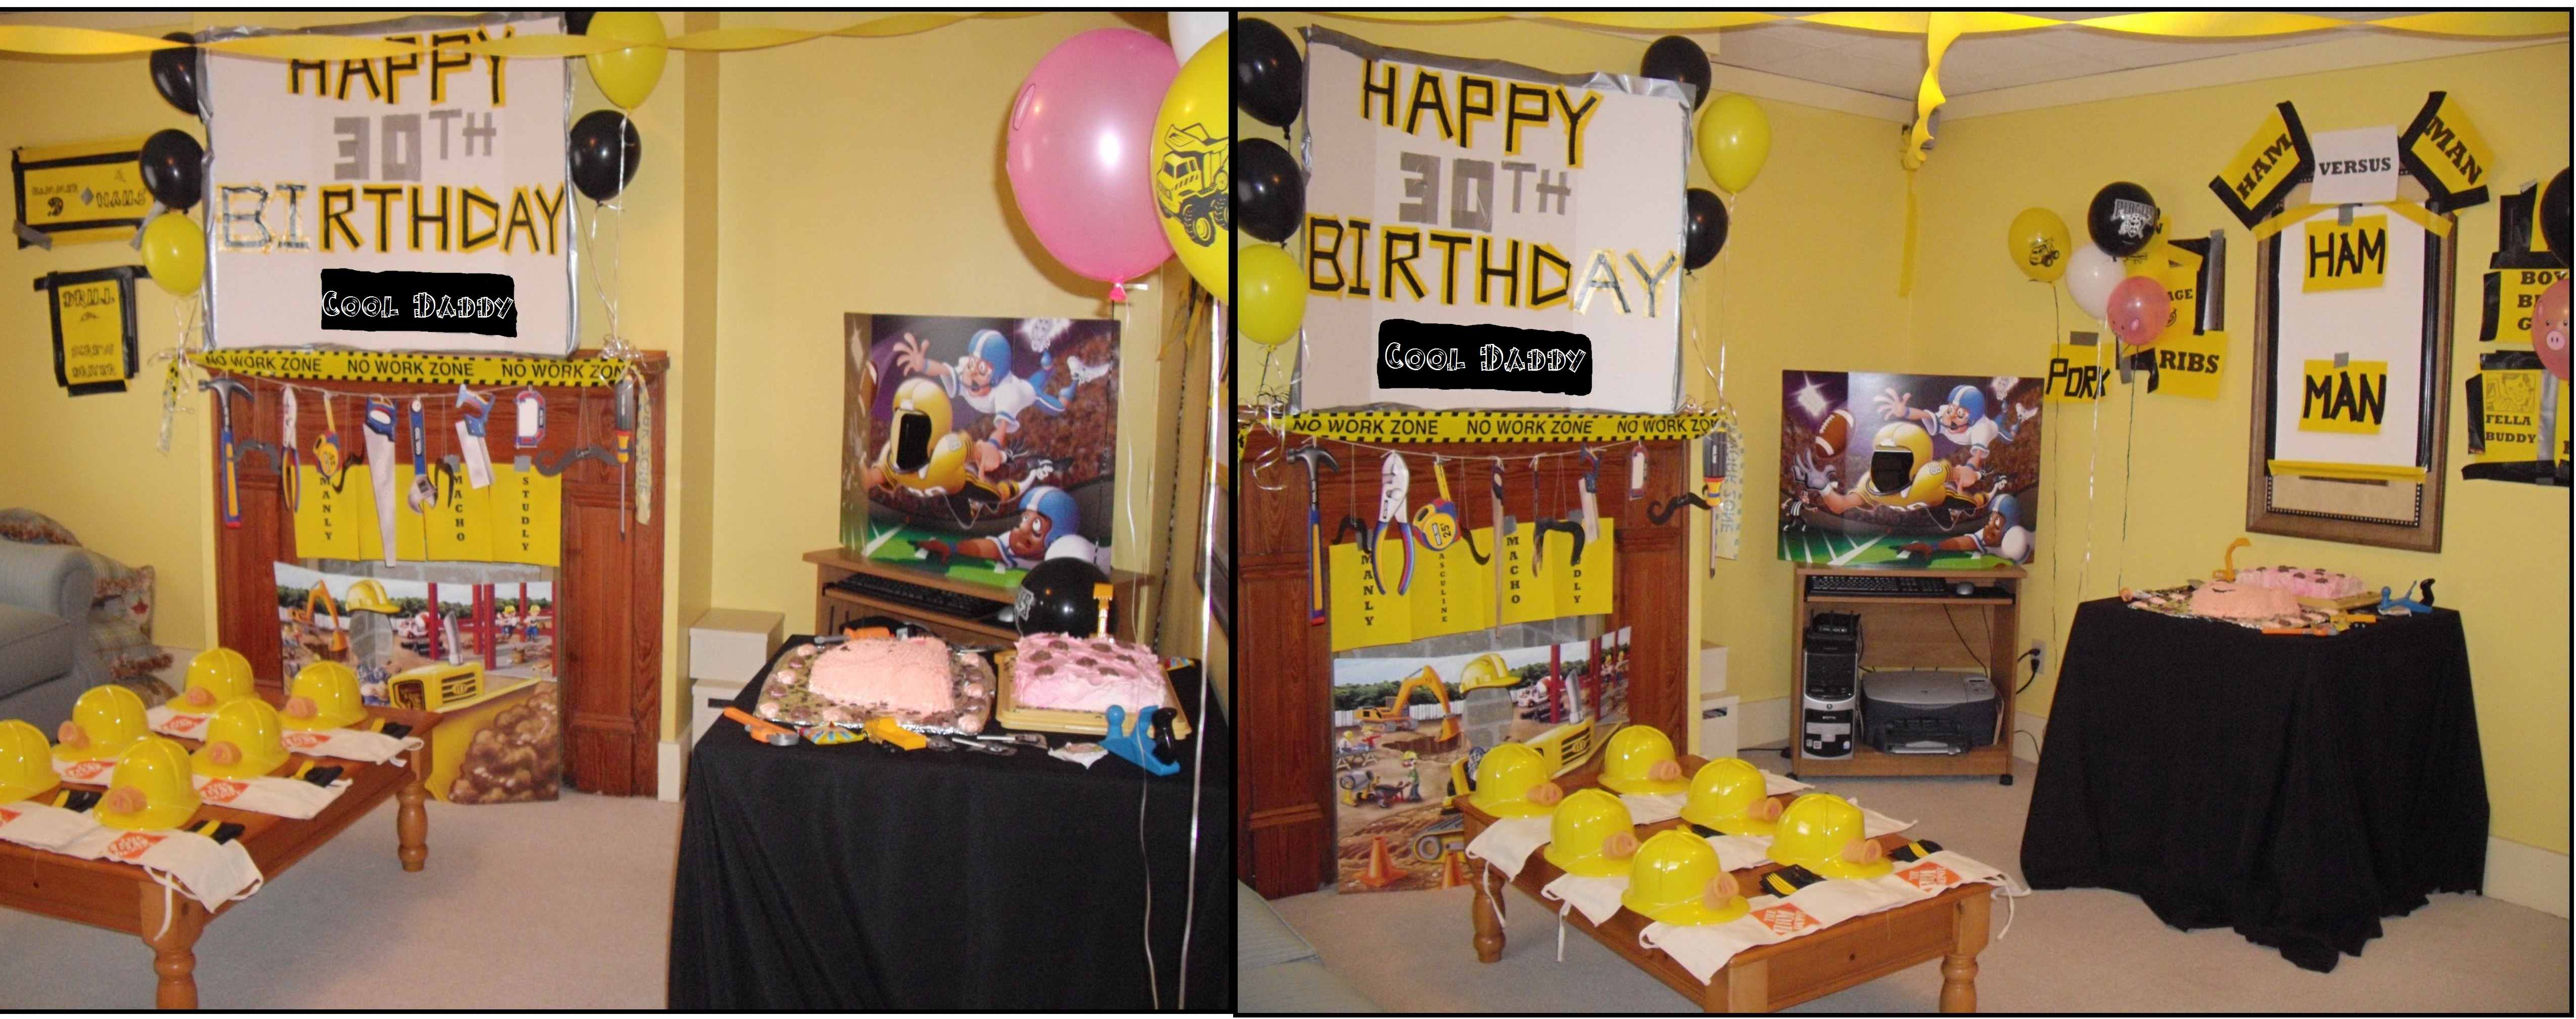 Birthday Decor For A Man Image Inspiration of Cake and Birthday